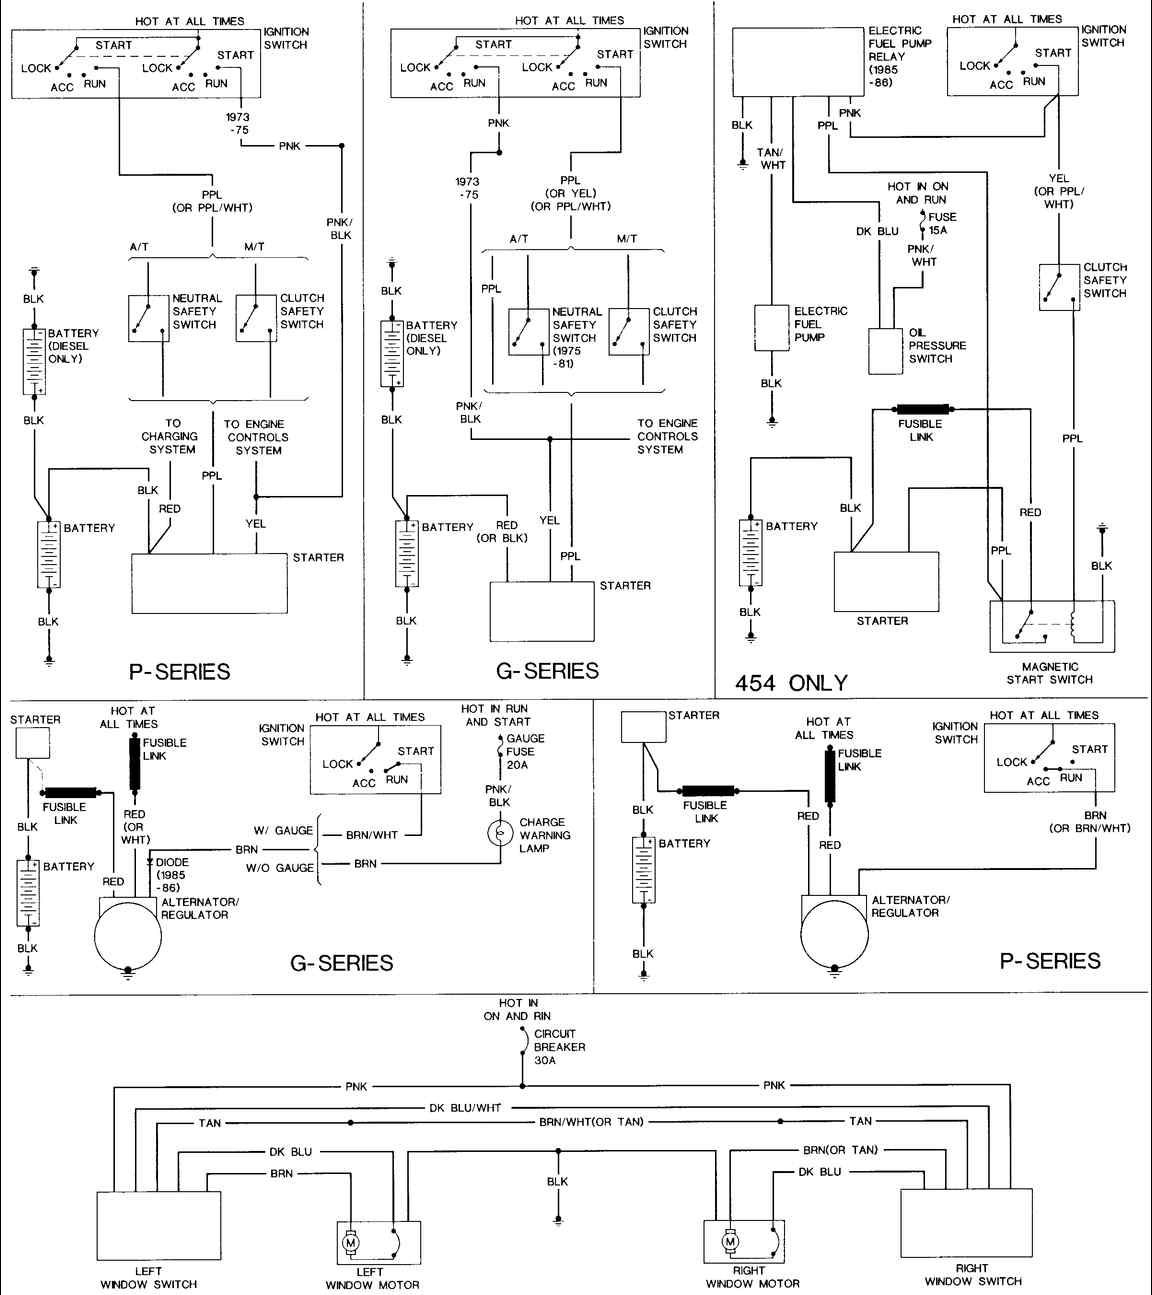 0c73623a181dc376dbb4777e2029d285 1984 chevy c10 wiring diagram 68 chevy c10 wiring diagram \u2022 wiring  at couponss.co